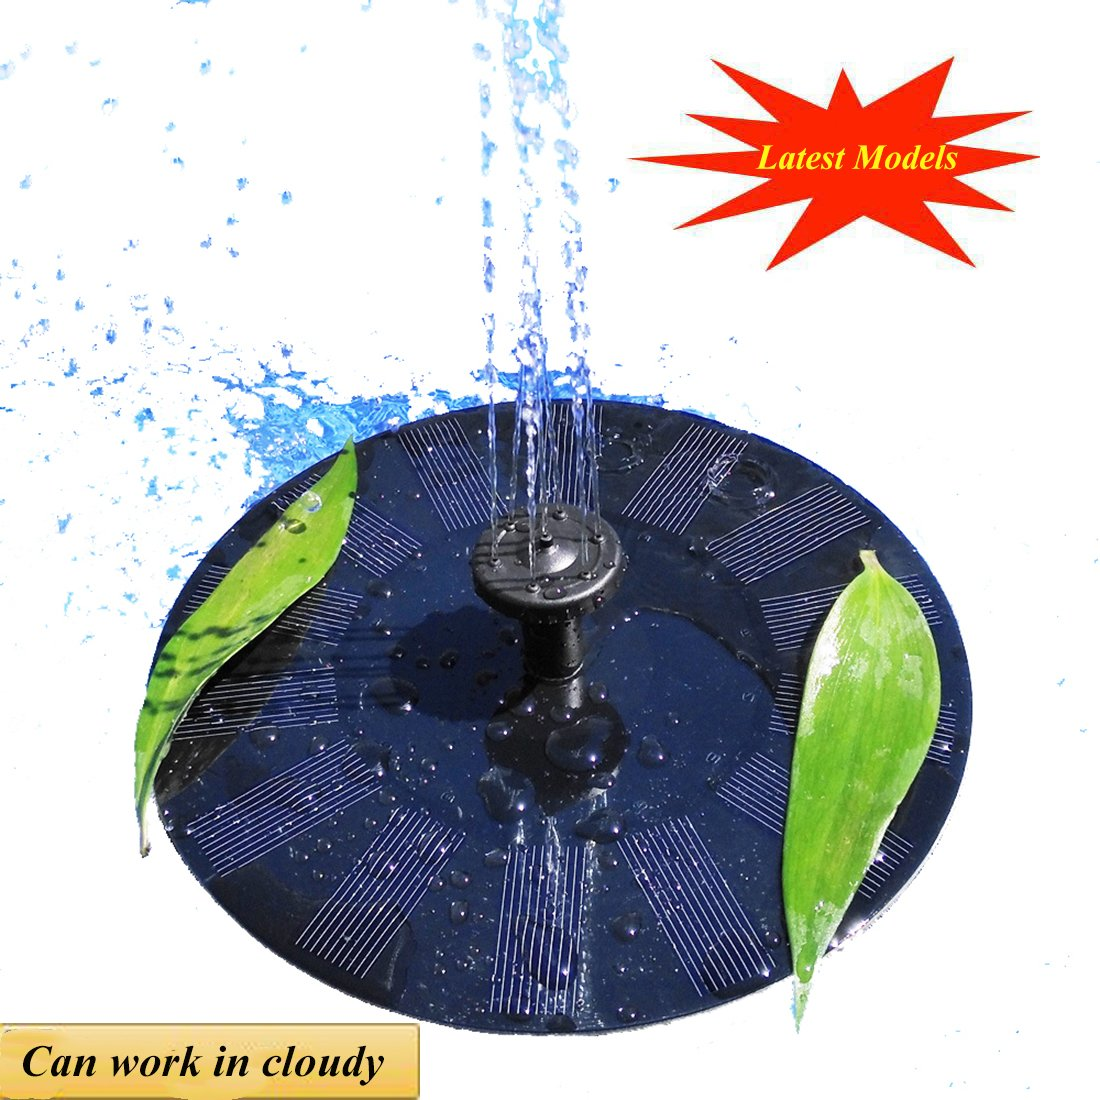 UFLYAY Solar Fountain Pump - 2018 Upgraded Can Work On A Cloudy Day - 1.4W Solar Panel Suitable Submersible Watering, Garden Decoration, Bird Bath, Fish Tank, Water Circulation Oxygen (Black)